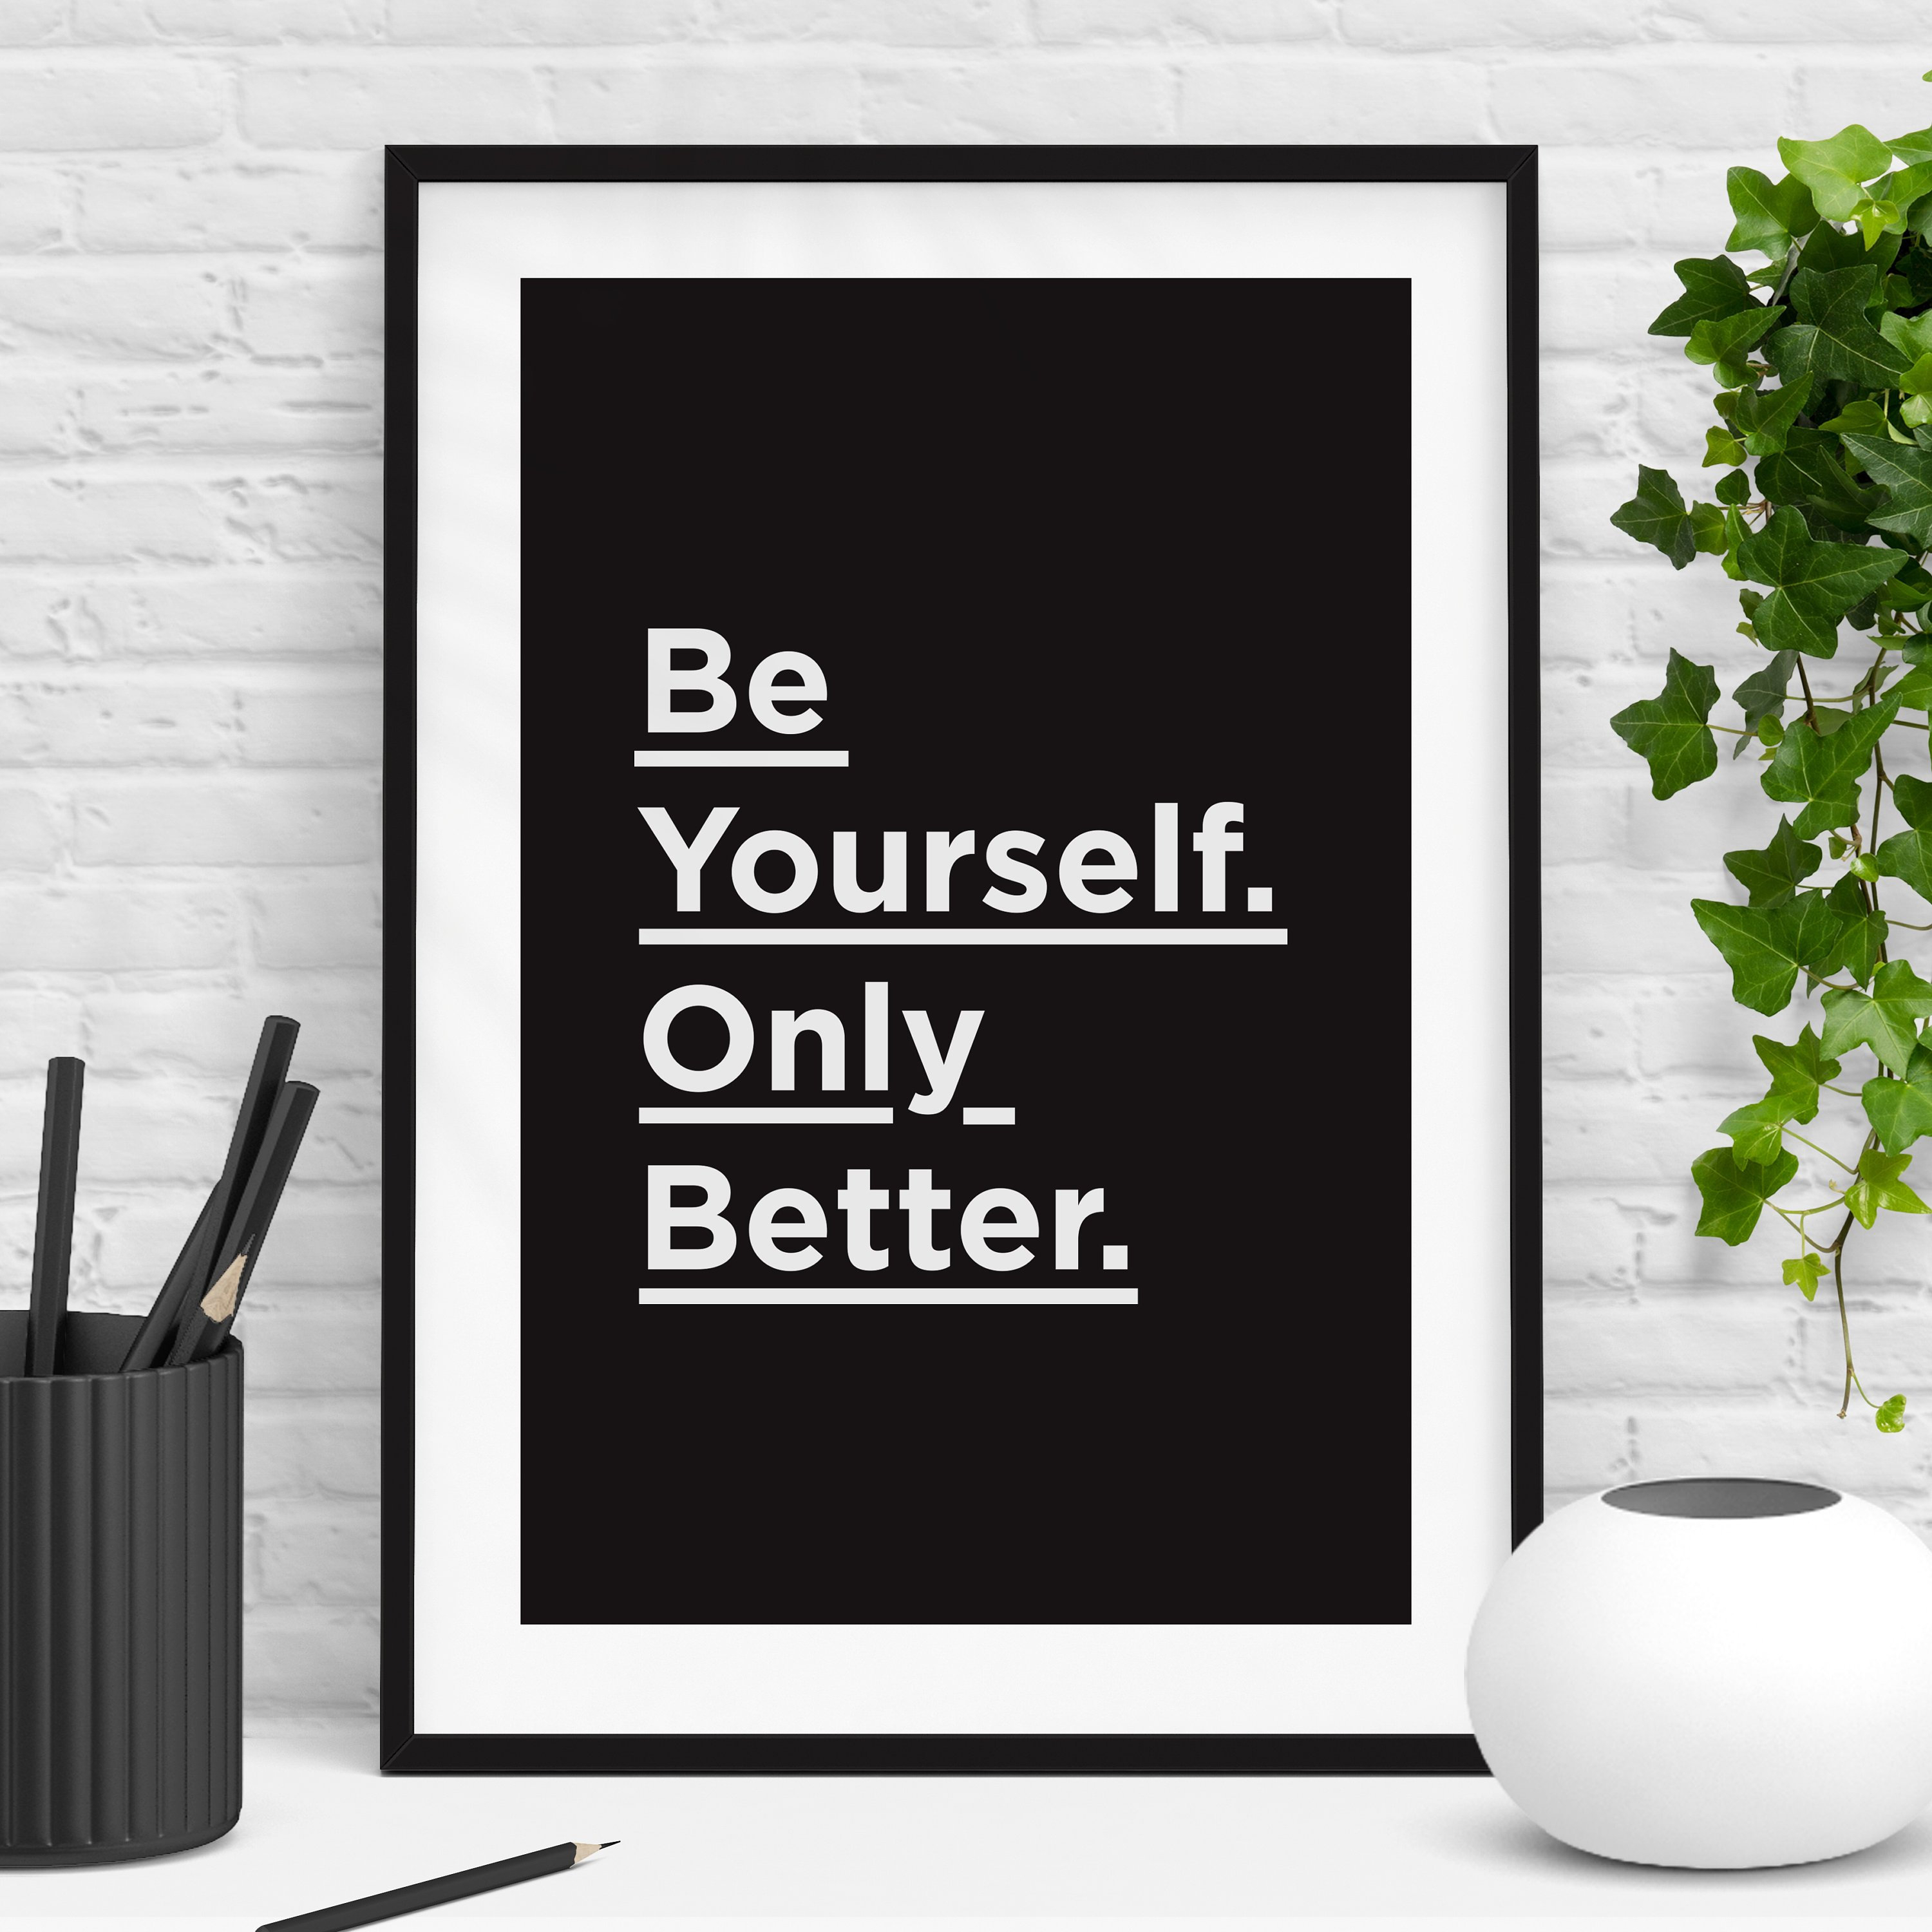 Be Yourself Only Better | Typography Print Inspirational Quotes Wall Art Motivational Wall Decor Home Decor Bedroom Self Care Within Rectangle Like Yourself Inspirational Typography Wall Plaque (View 18 of 30)